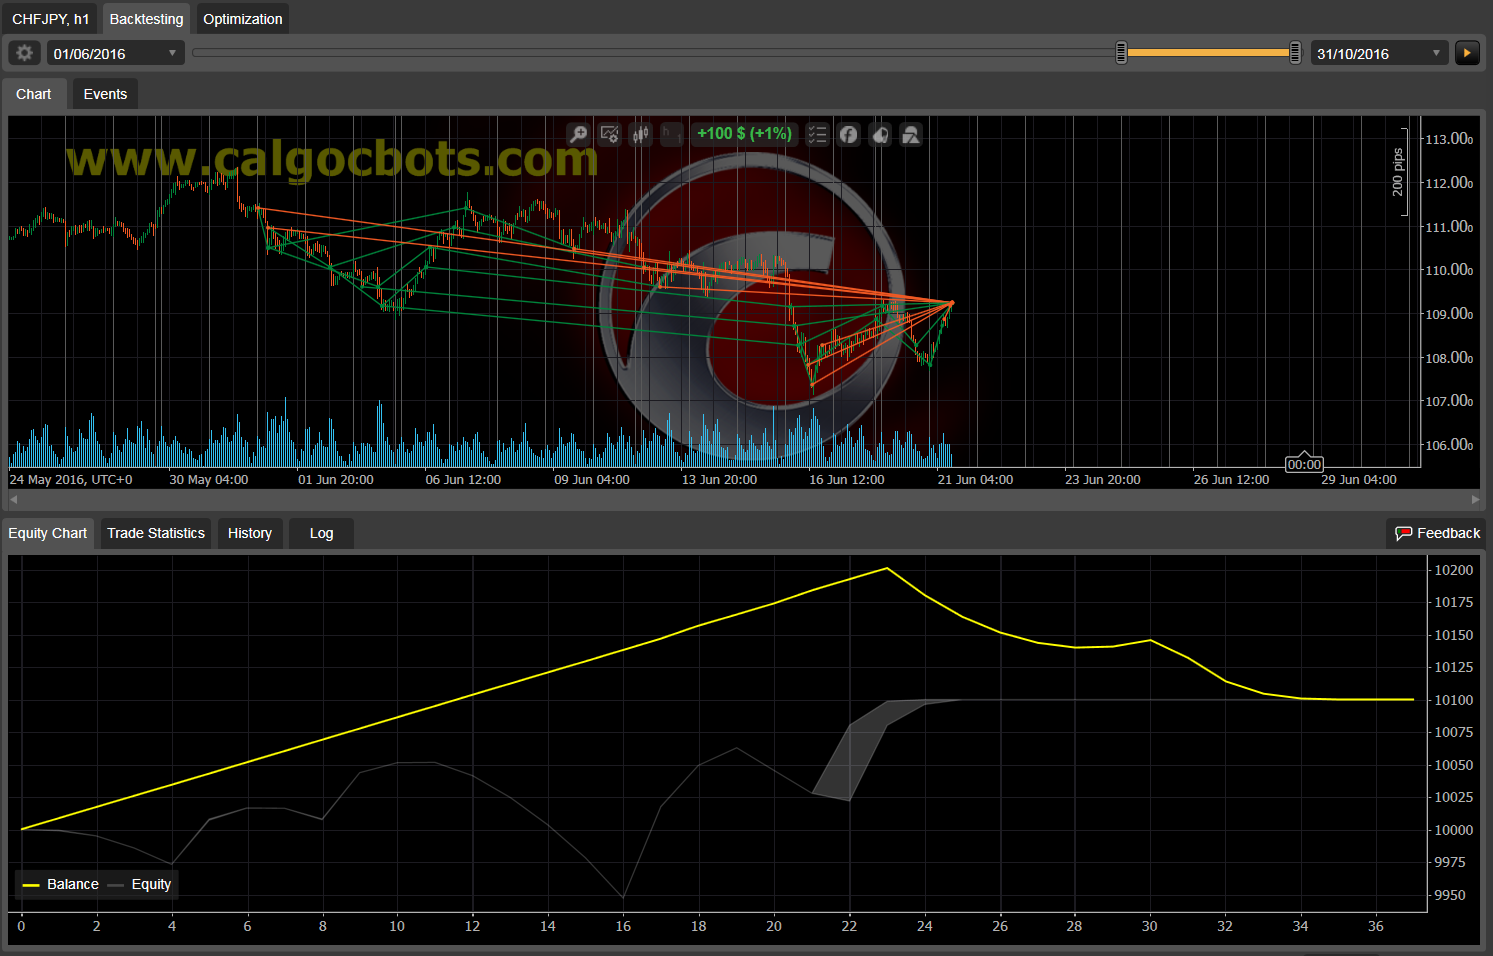 Dual Grid Hedge CHF JPY 1h cAlgo cBots cTrader 1k 100 45 90 - 11 a